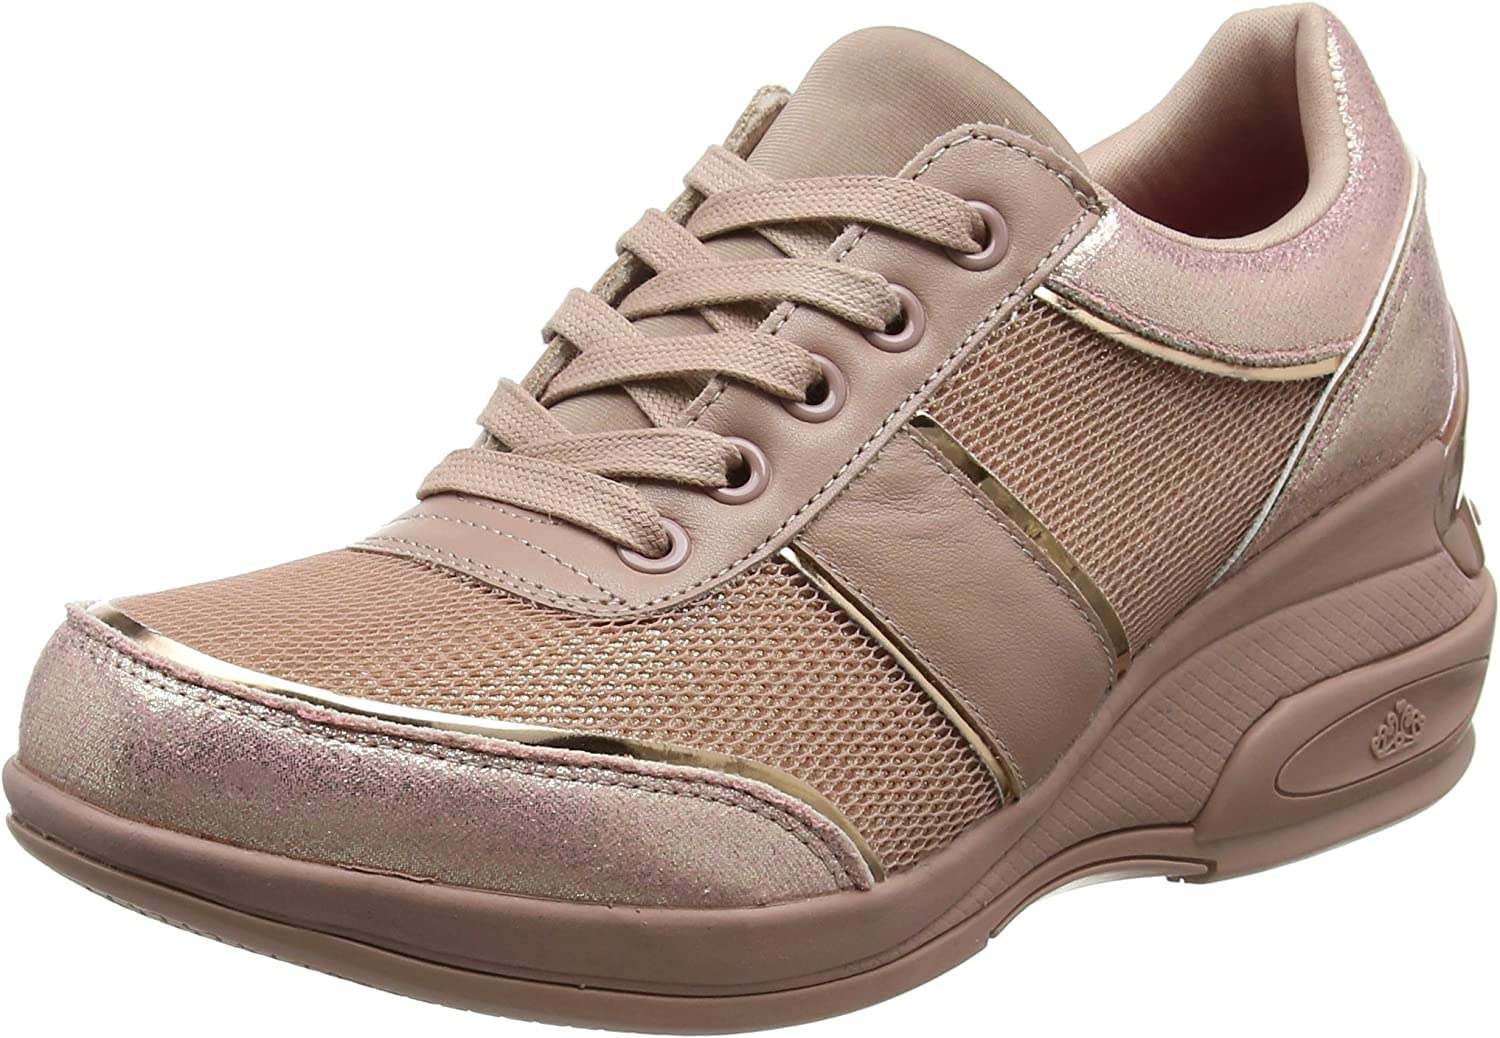 Fornarina shoes Woman Sneakers PE18DY1076P009